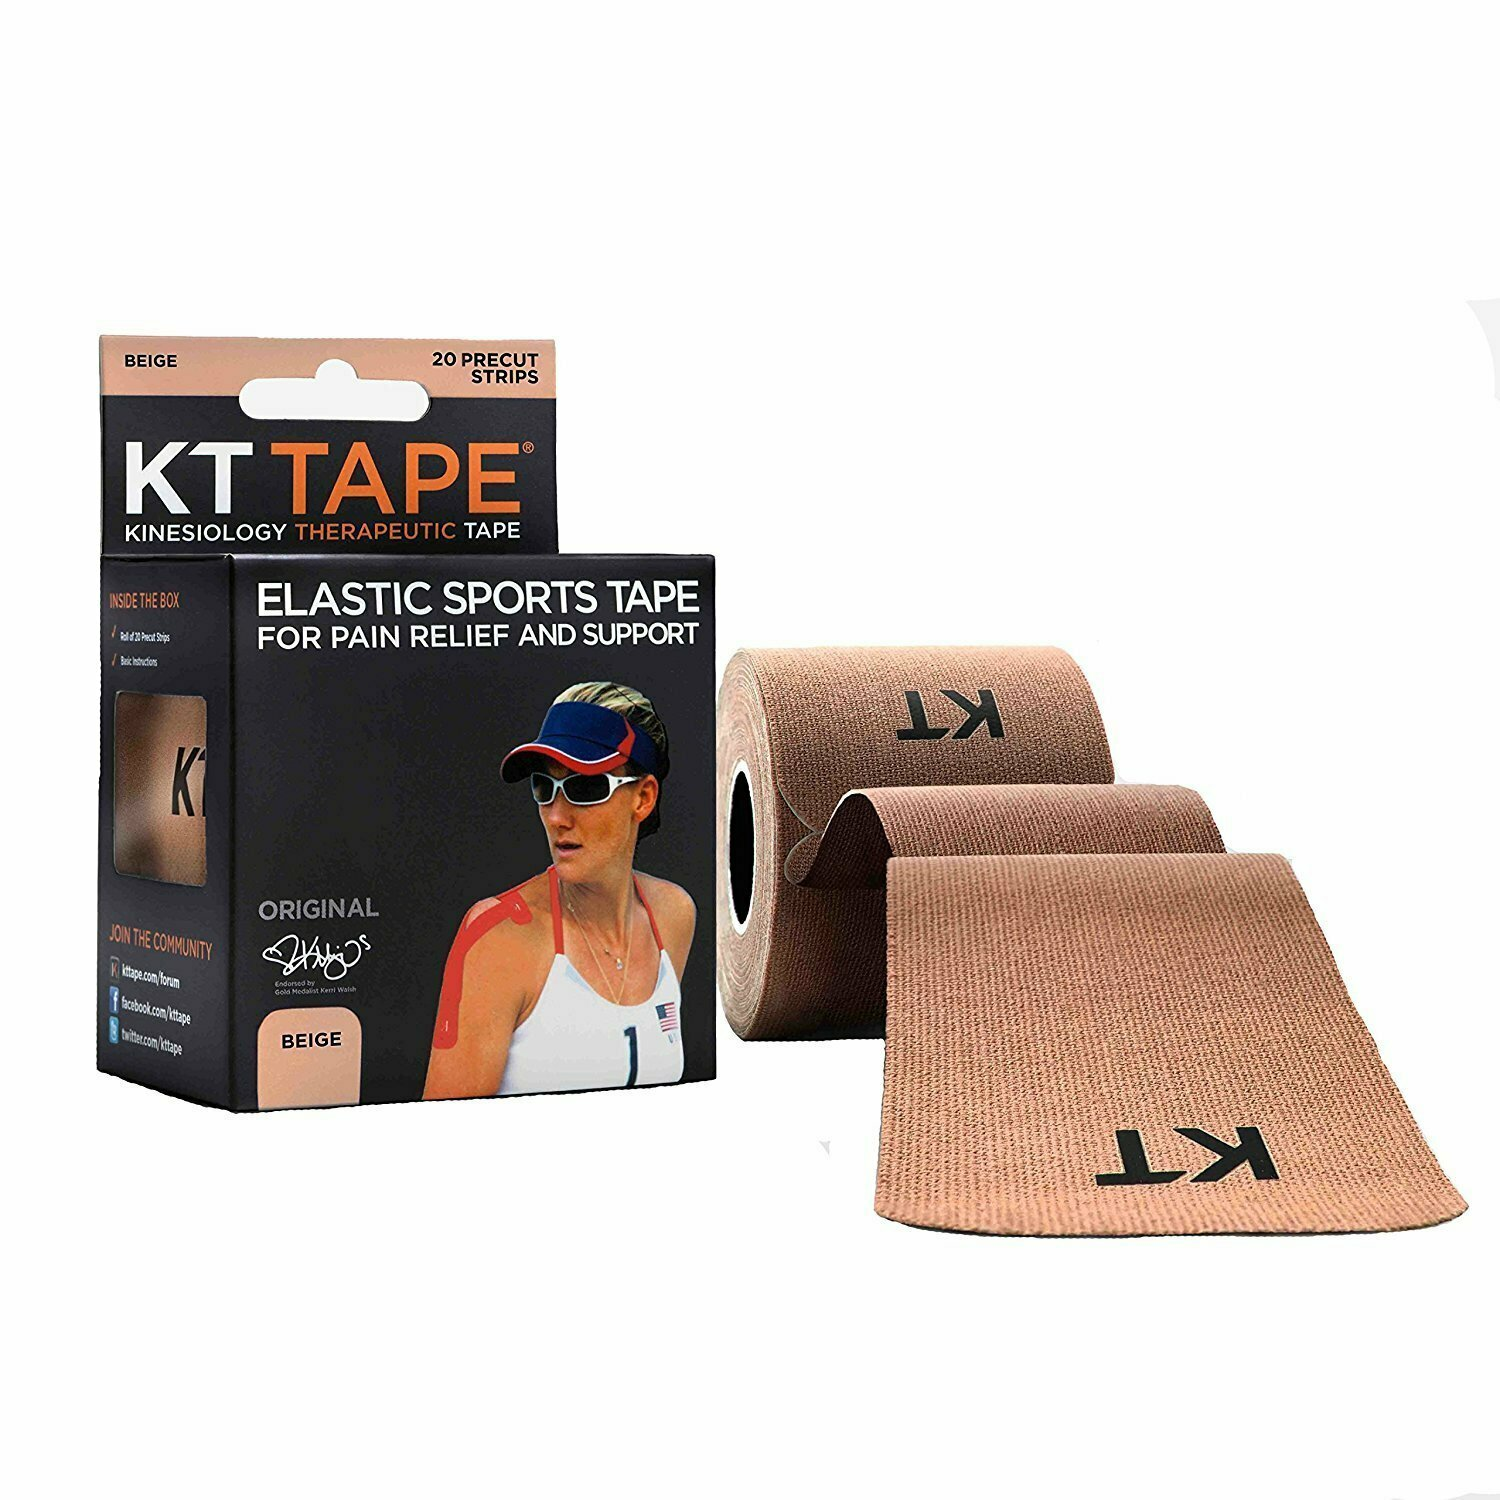 KT Tape Original Cotton Elastic Kinesiology Therapeutic Sports Tape, 20 Pre cut 10 inch Strips, Beige